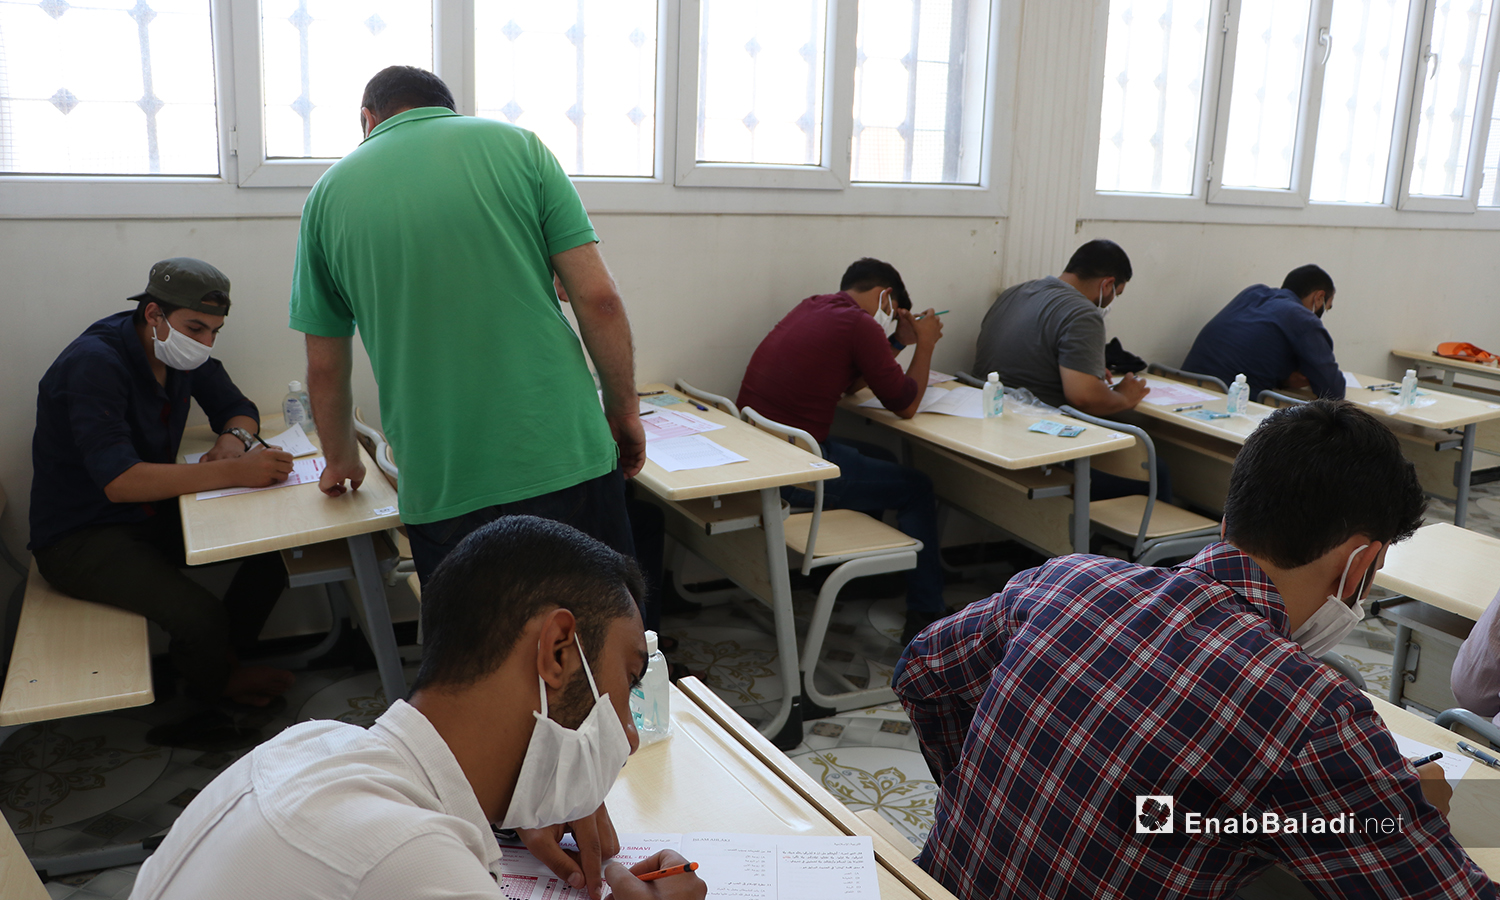 Students undergoing the final exams of the high school certificate amid the coronavirus (COVID-19) protective measures in al-Bab city of northern Aleppo countryside – 12 July 2020 (Enab Baladi / Asim Melhem)